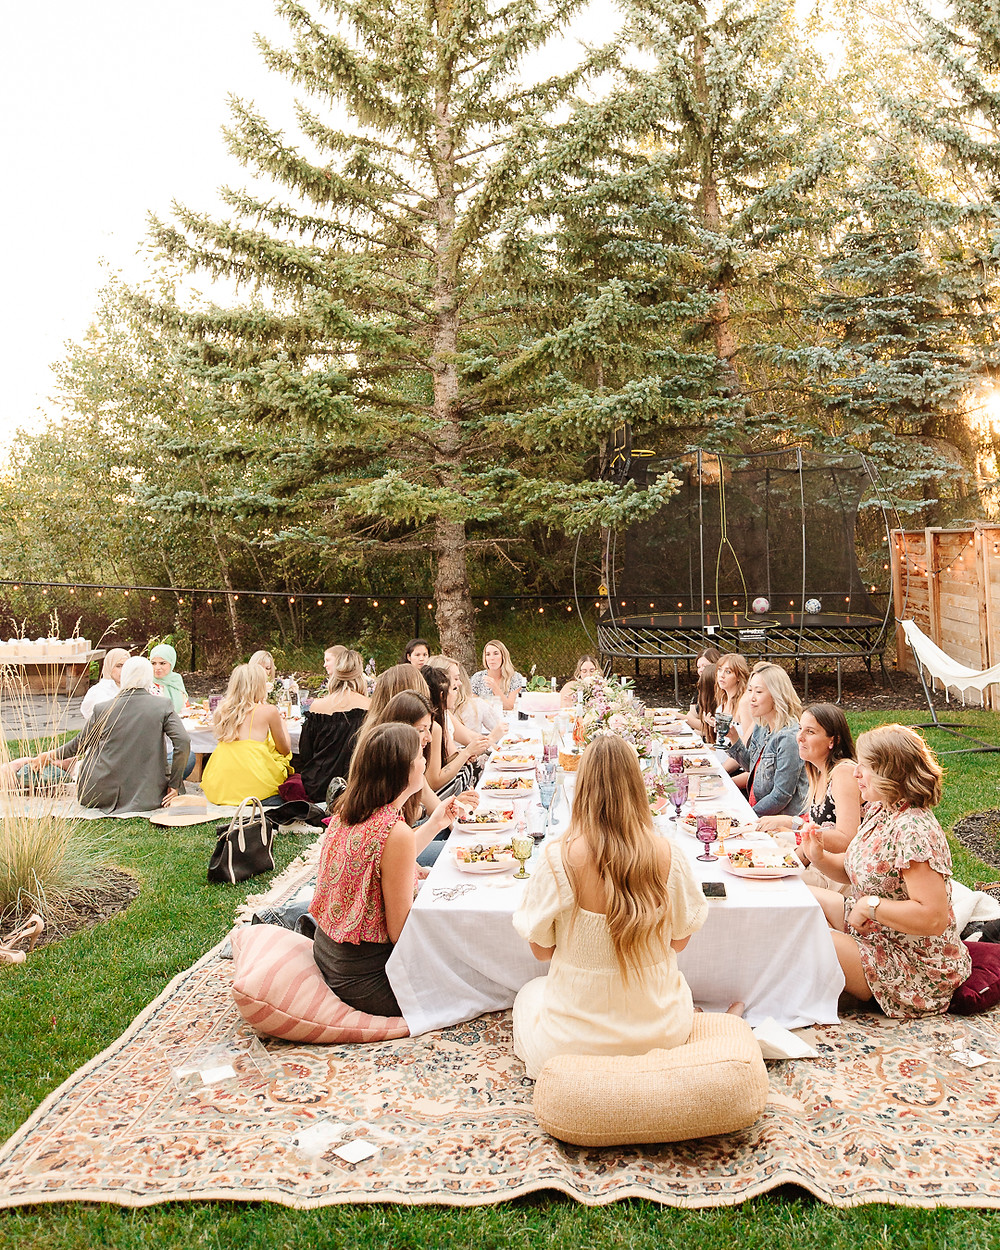 A backyard boho garden party with flowers, vintage rugs, charcuterie wine, twinkle lights, and all your best girlfriends.